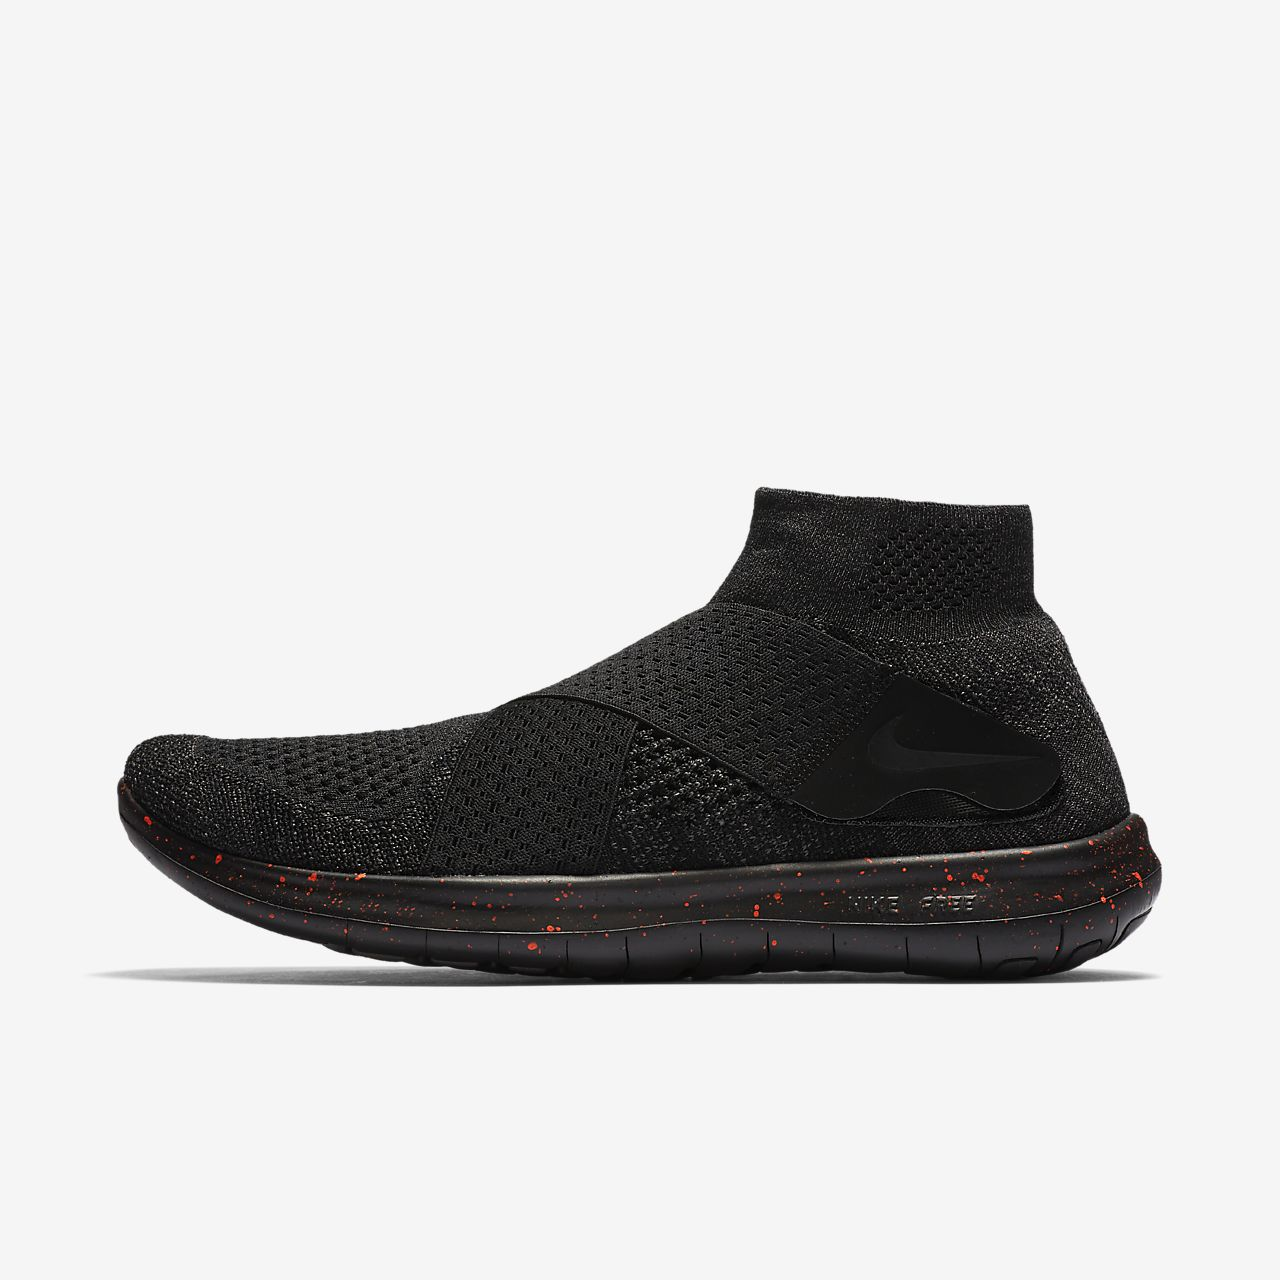 purchase cheap ad68e eba6e Men s Running Shoe. NikeLab Free RN Motion Flyknit 2017